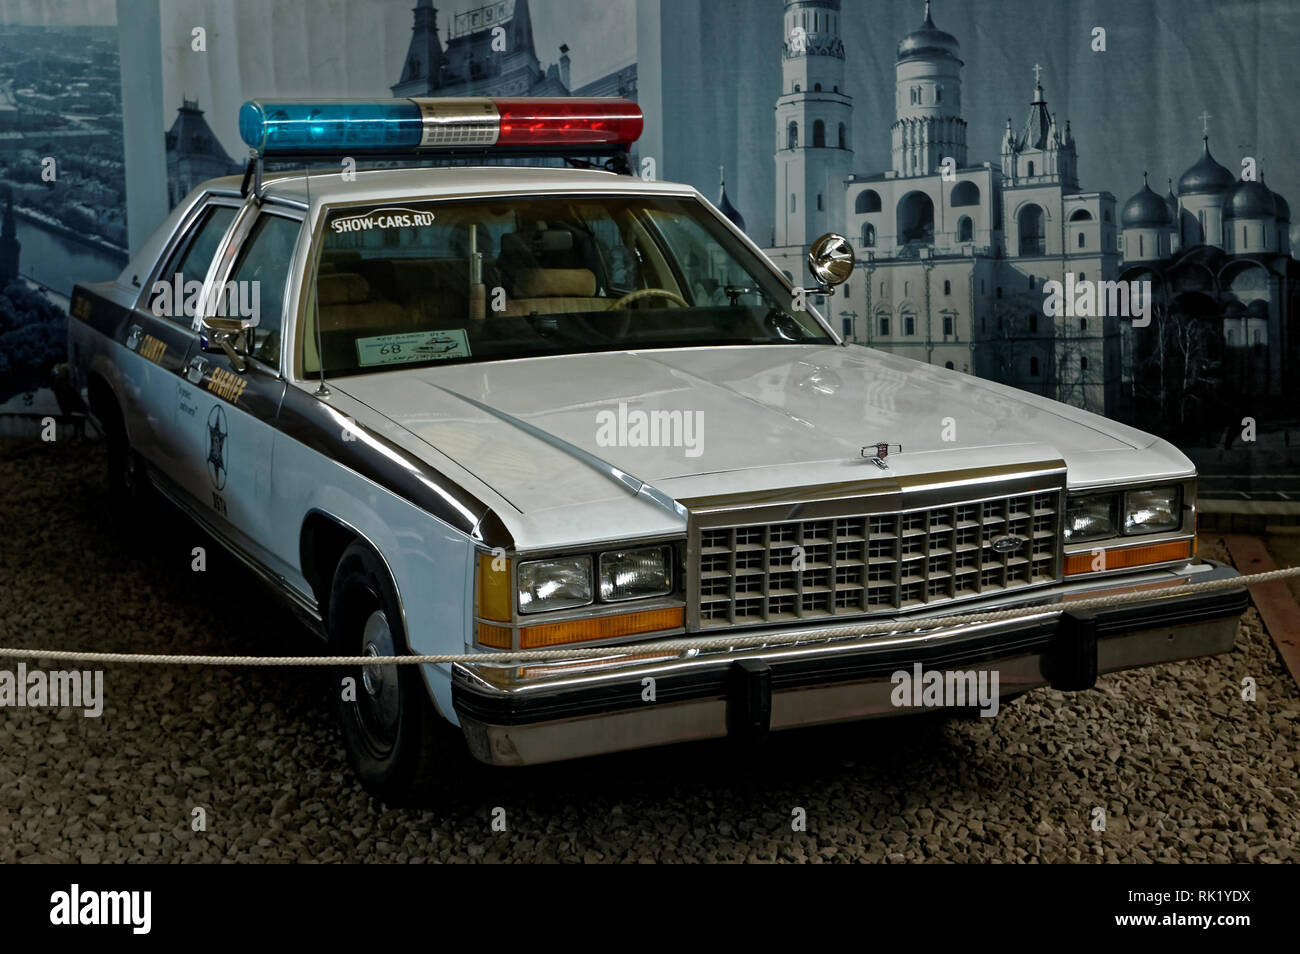 Illustration Ford Crown Victoria High Resolution Stock Photography And Images Alamy Glenn kenny november 08, 2019. alamy